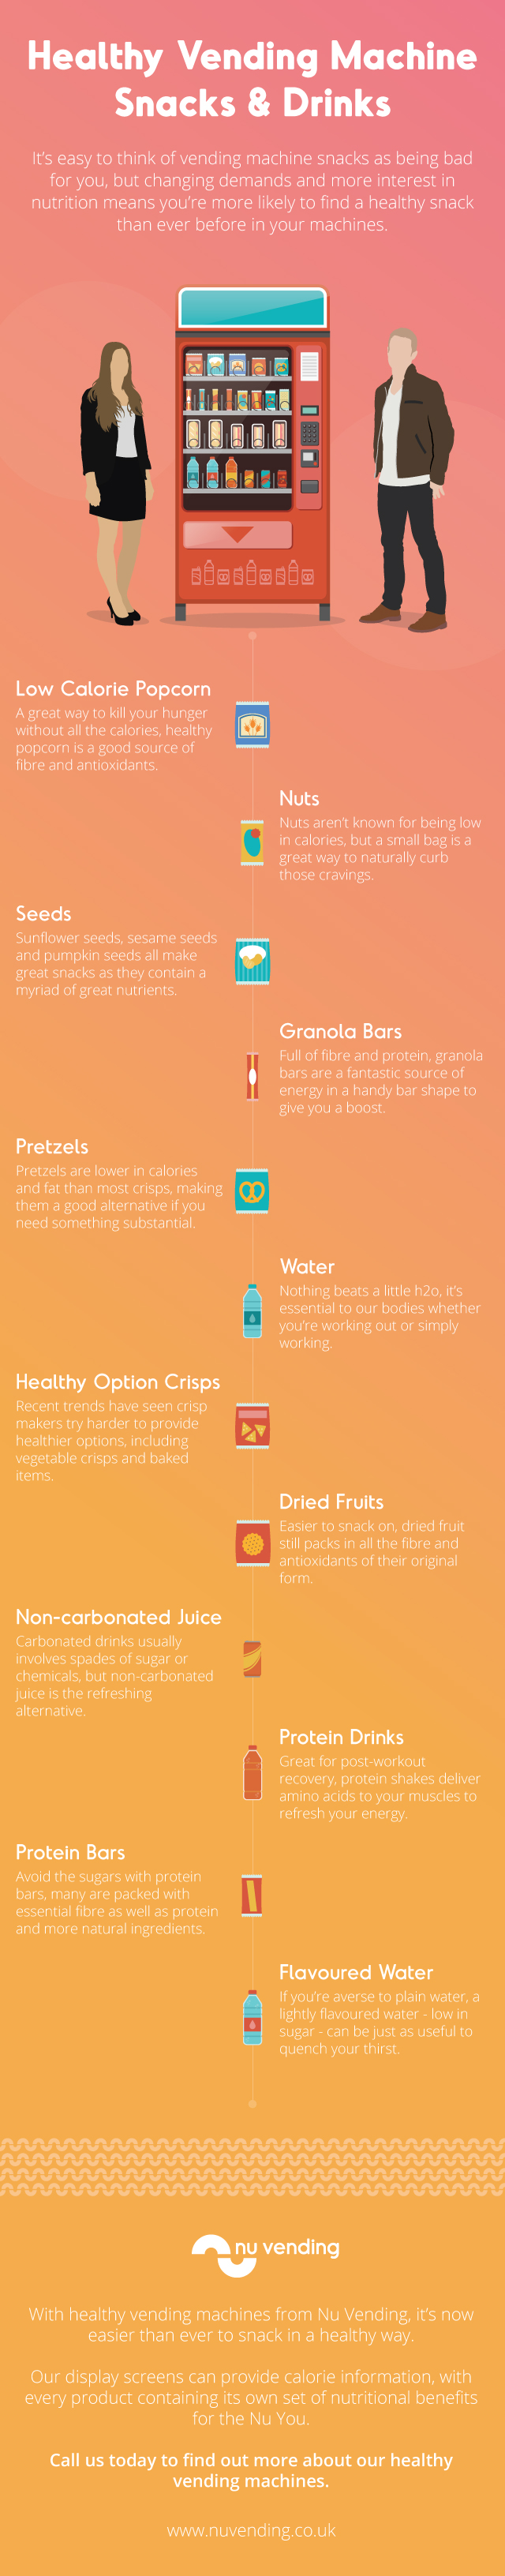 Healthy vending machine snacks and drinks infographic